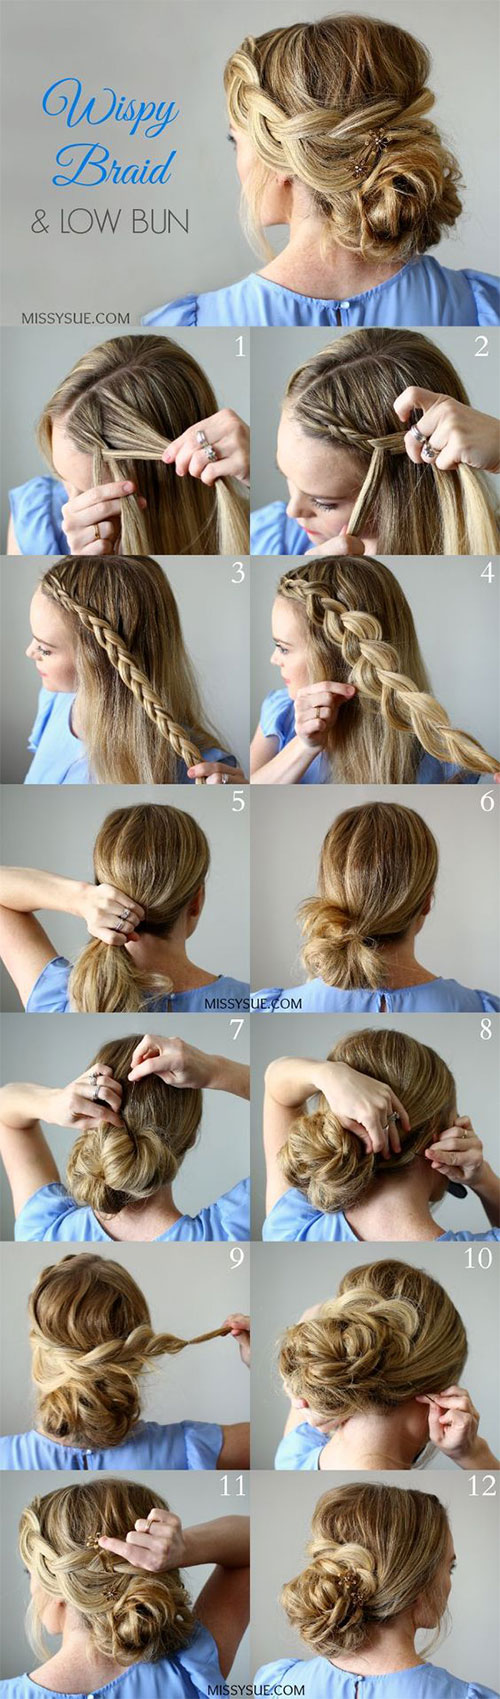 12-Step-By-Step-Spring-Hairstyle-Tutorials-For-Learners-2016-2